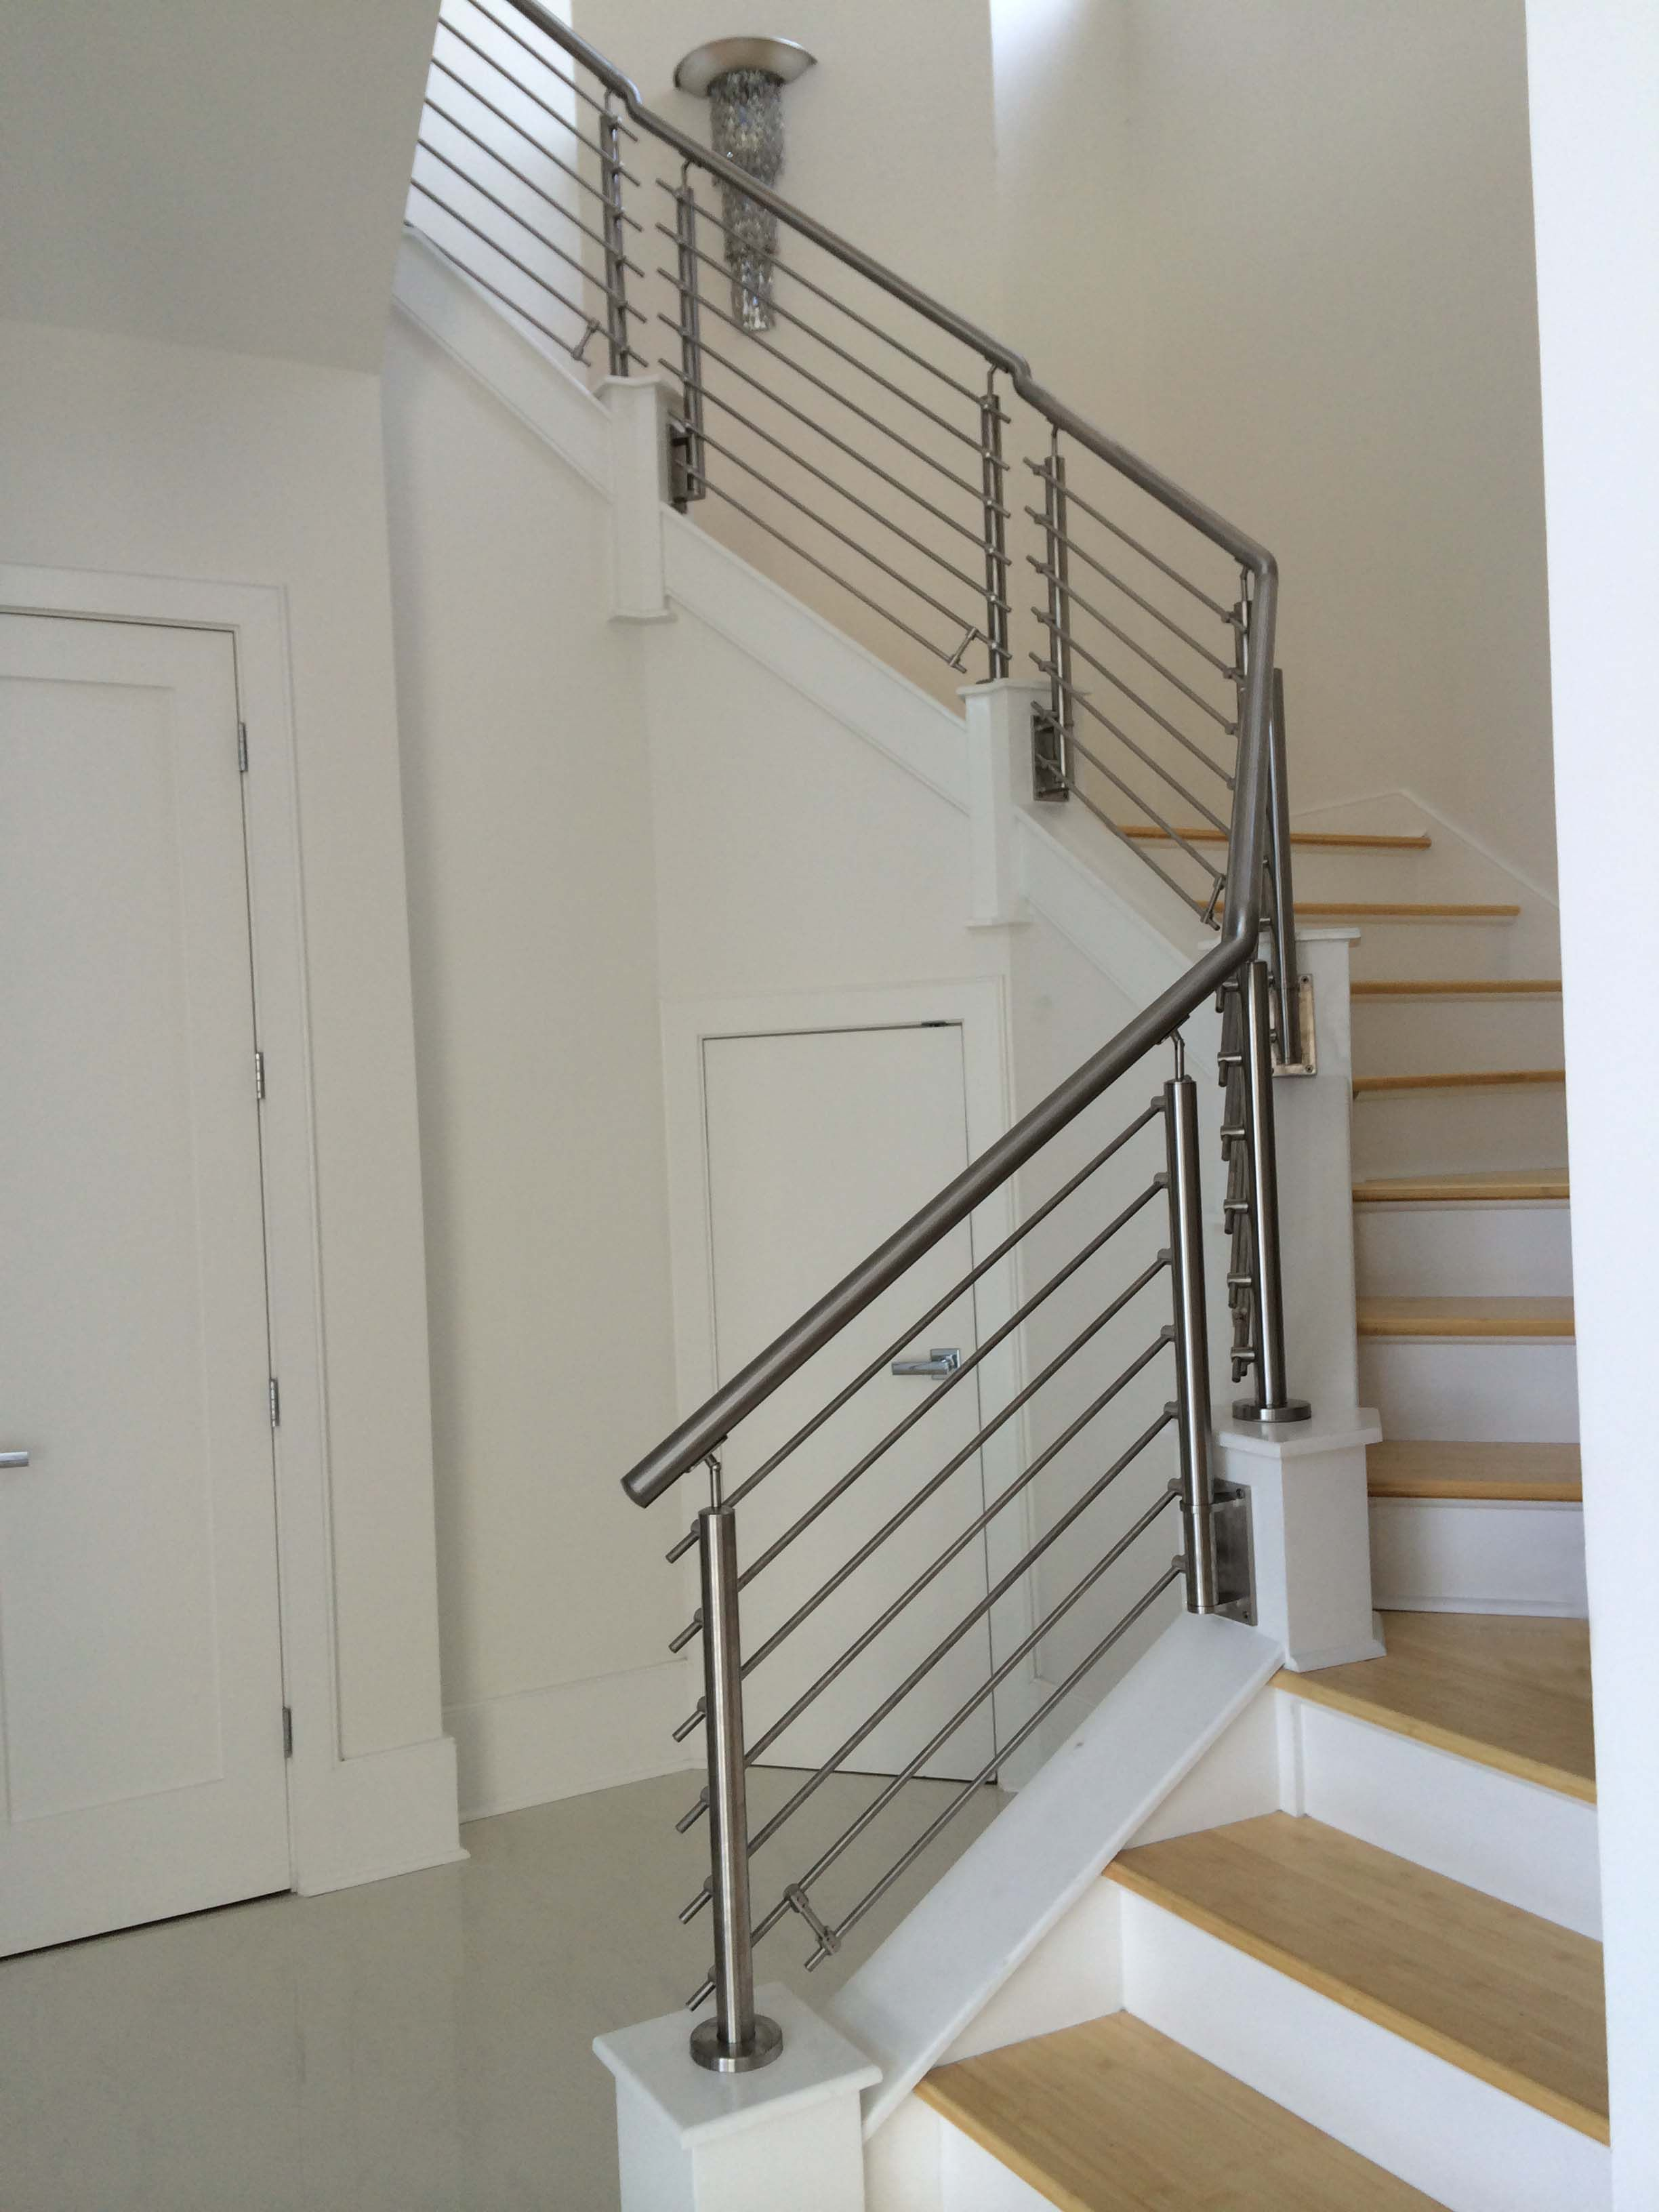 Best New Stainless Railing Application Photos From Our Friends 400 x 300